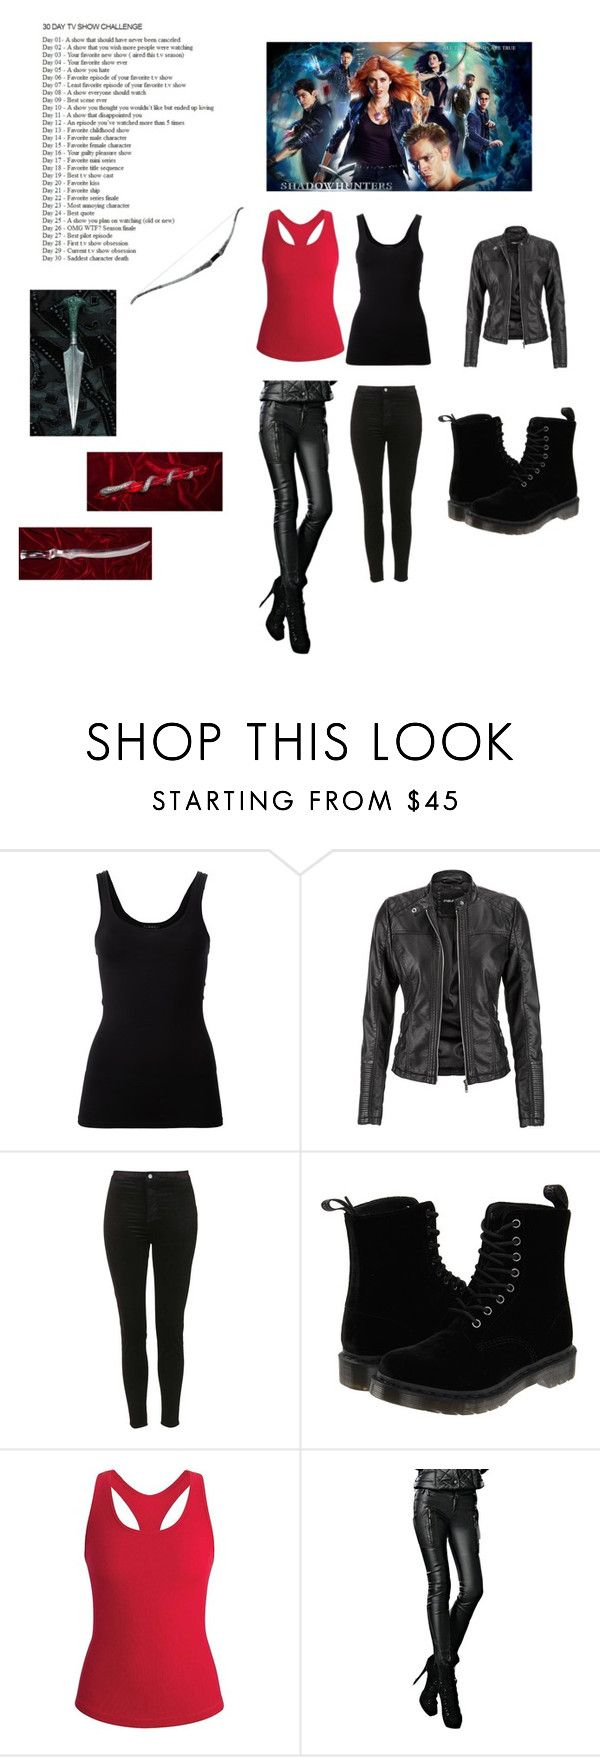 """Tv show challenge day 3"" by fangirl05 ❤ liked on Polyvore featuring Theory, maurices, Topshop, Dr. Martens and Black Diamond"